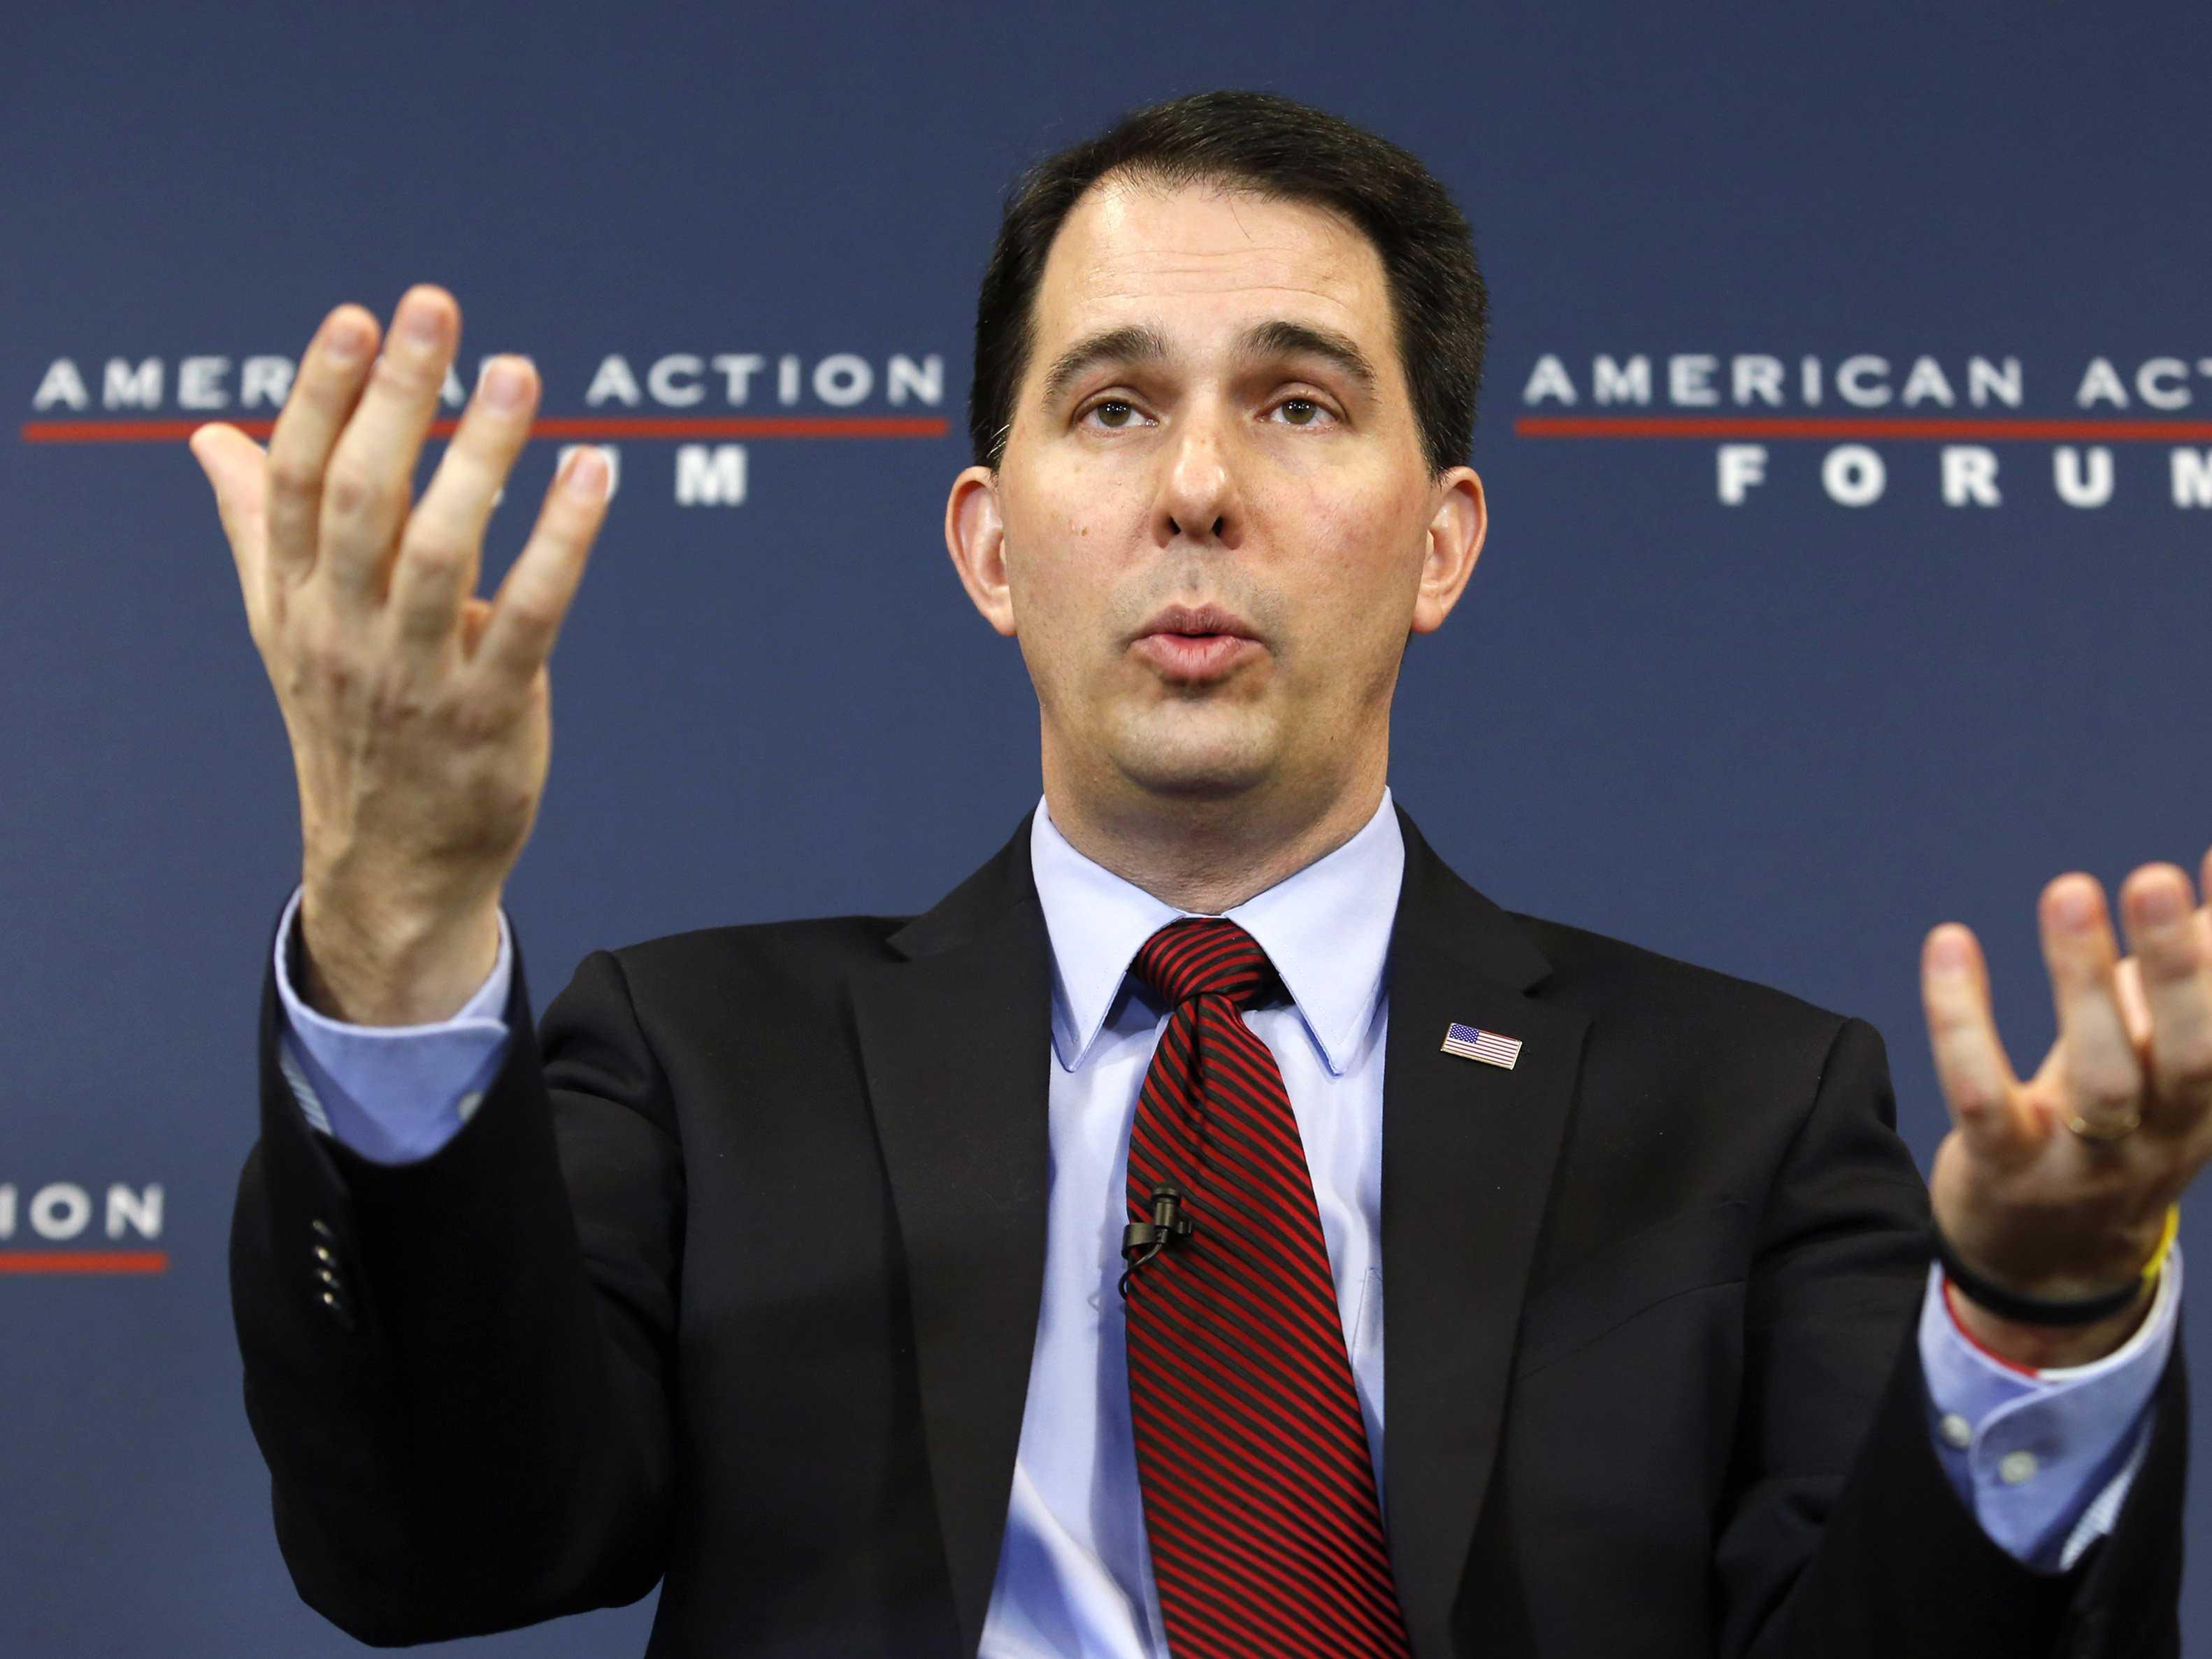 REPORT: Scott Walker flipped his immigration position again